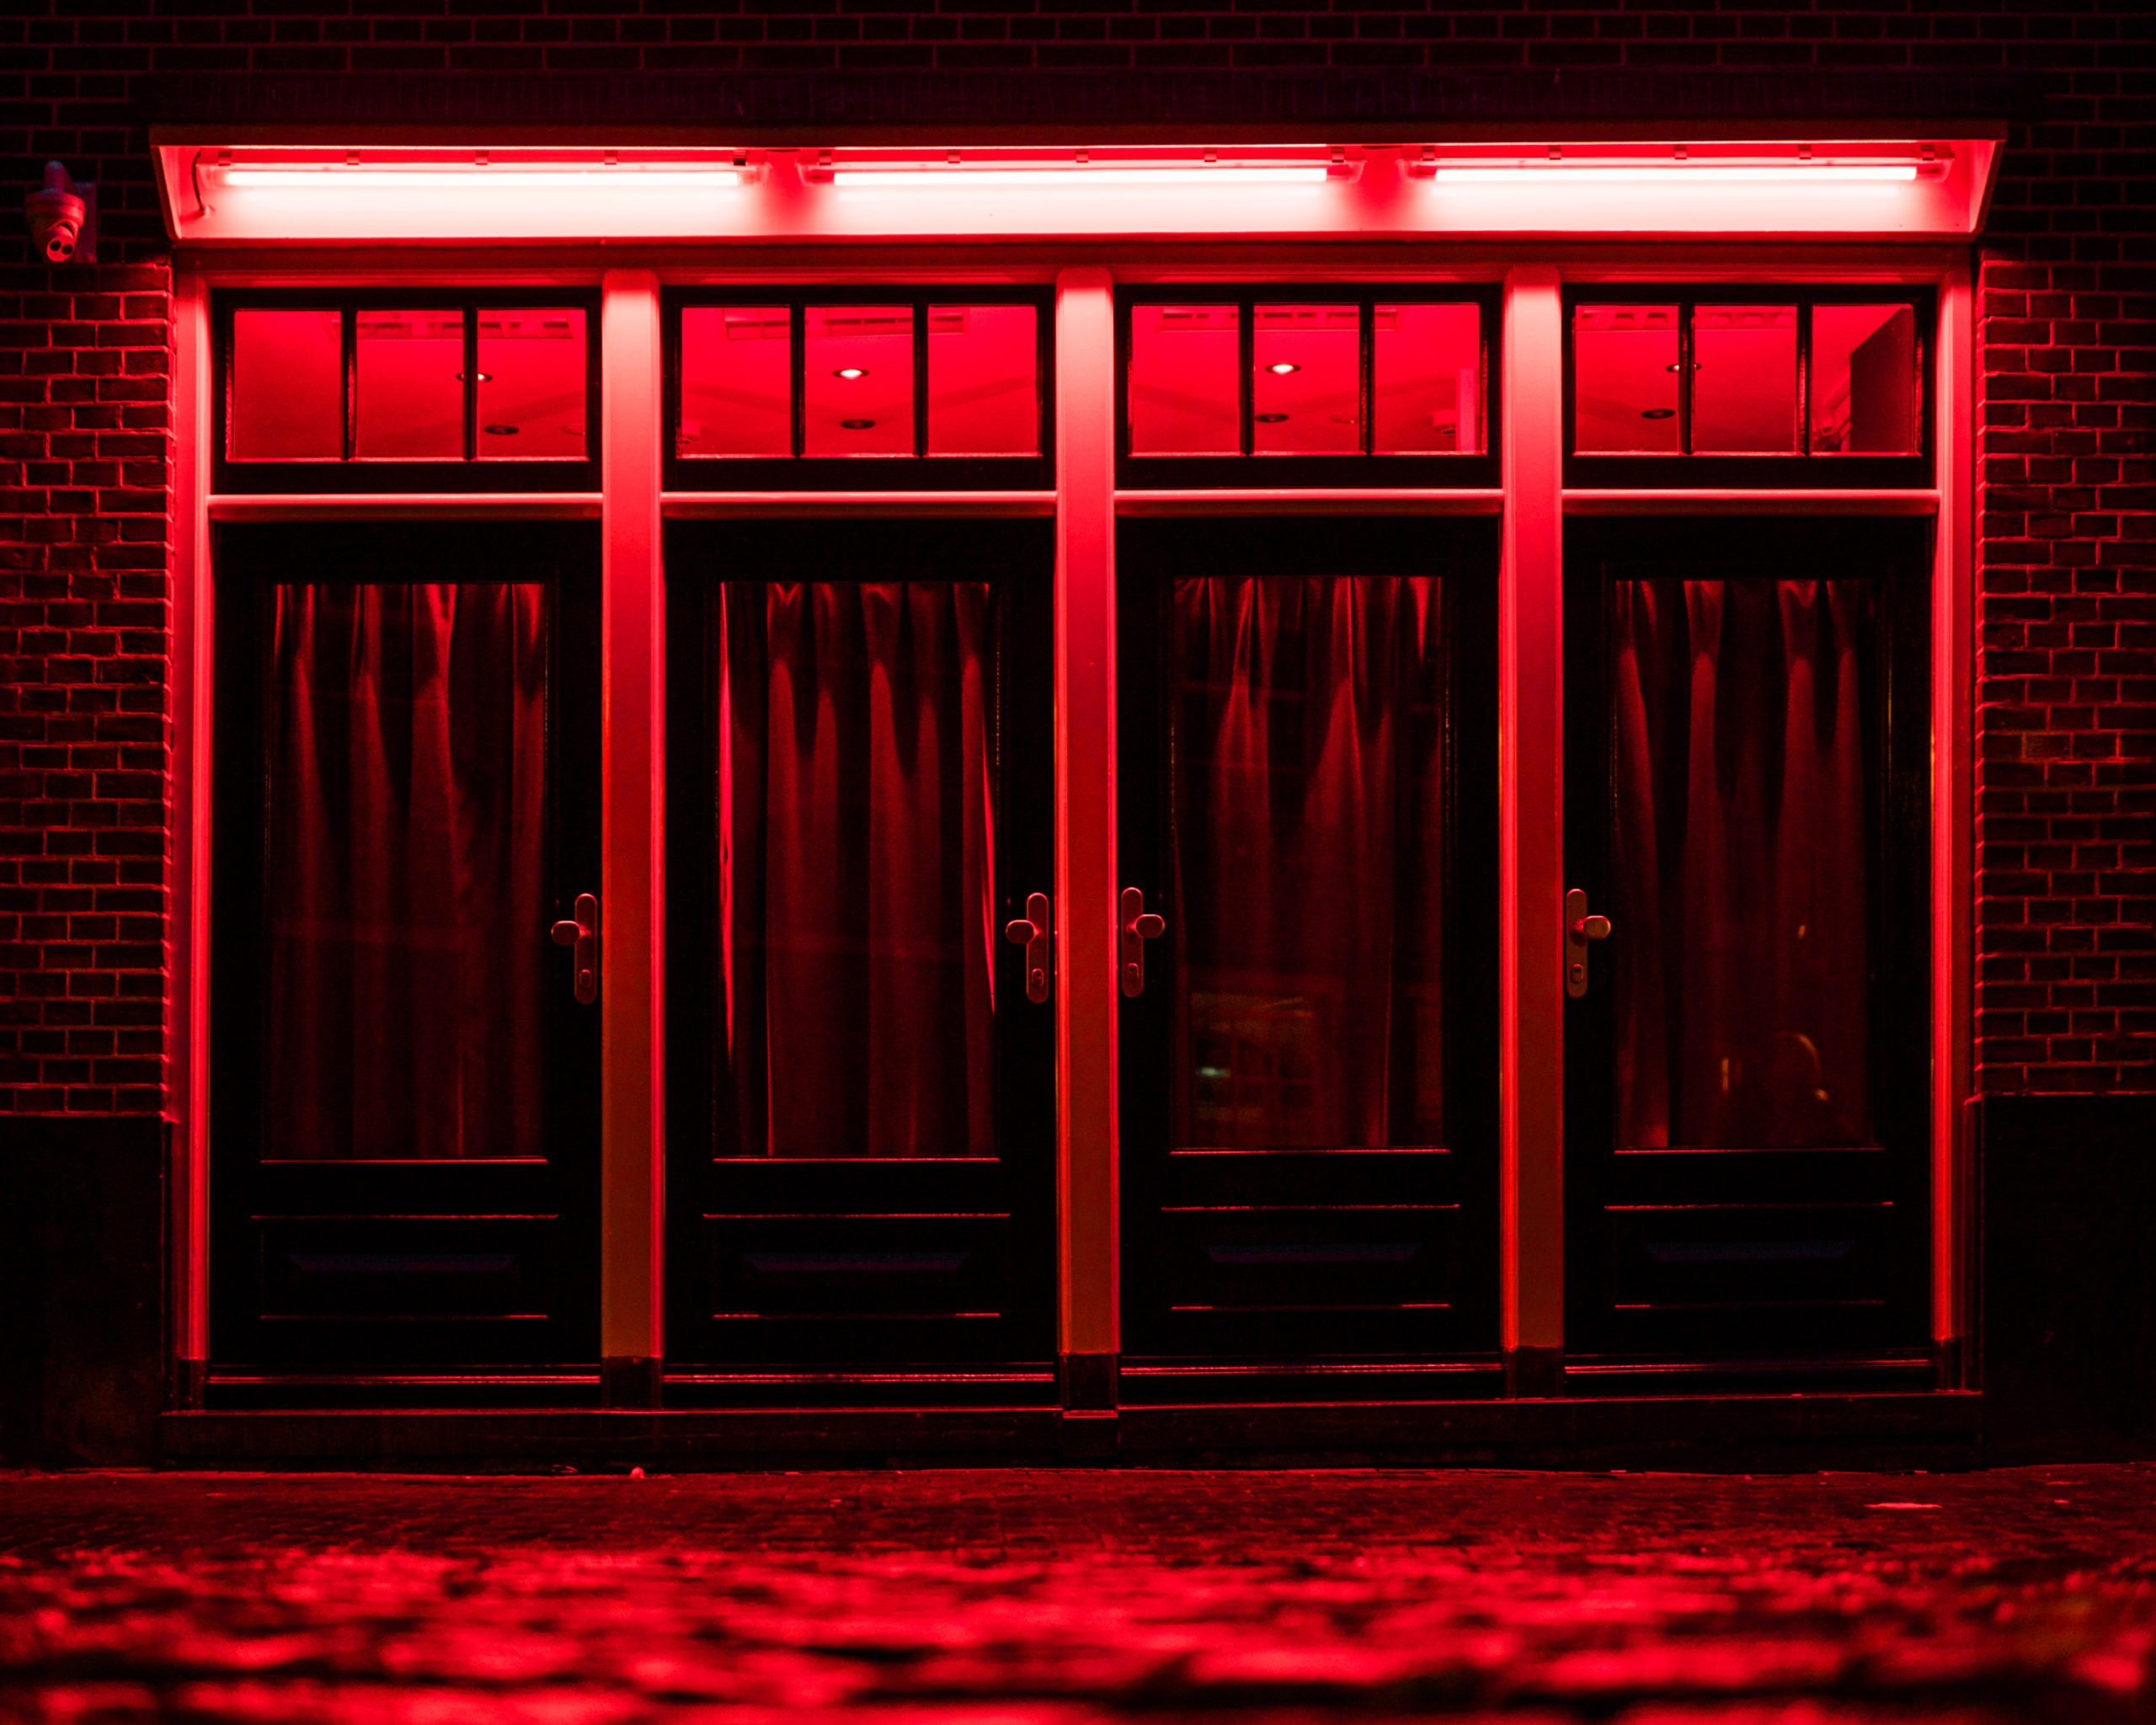 prostitution sex work depenalisation legalisation amsterdam red lights district